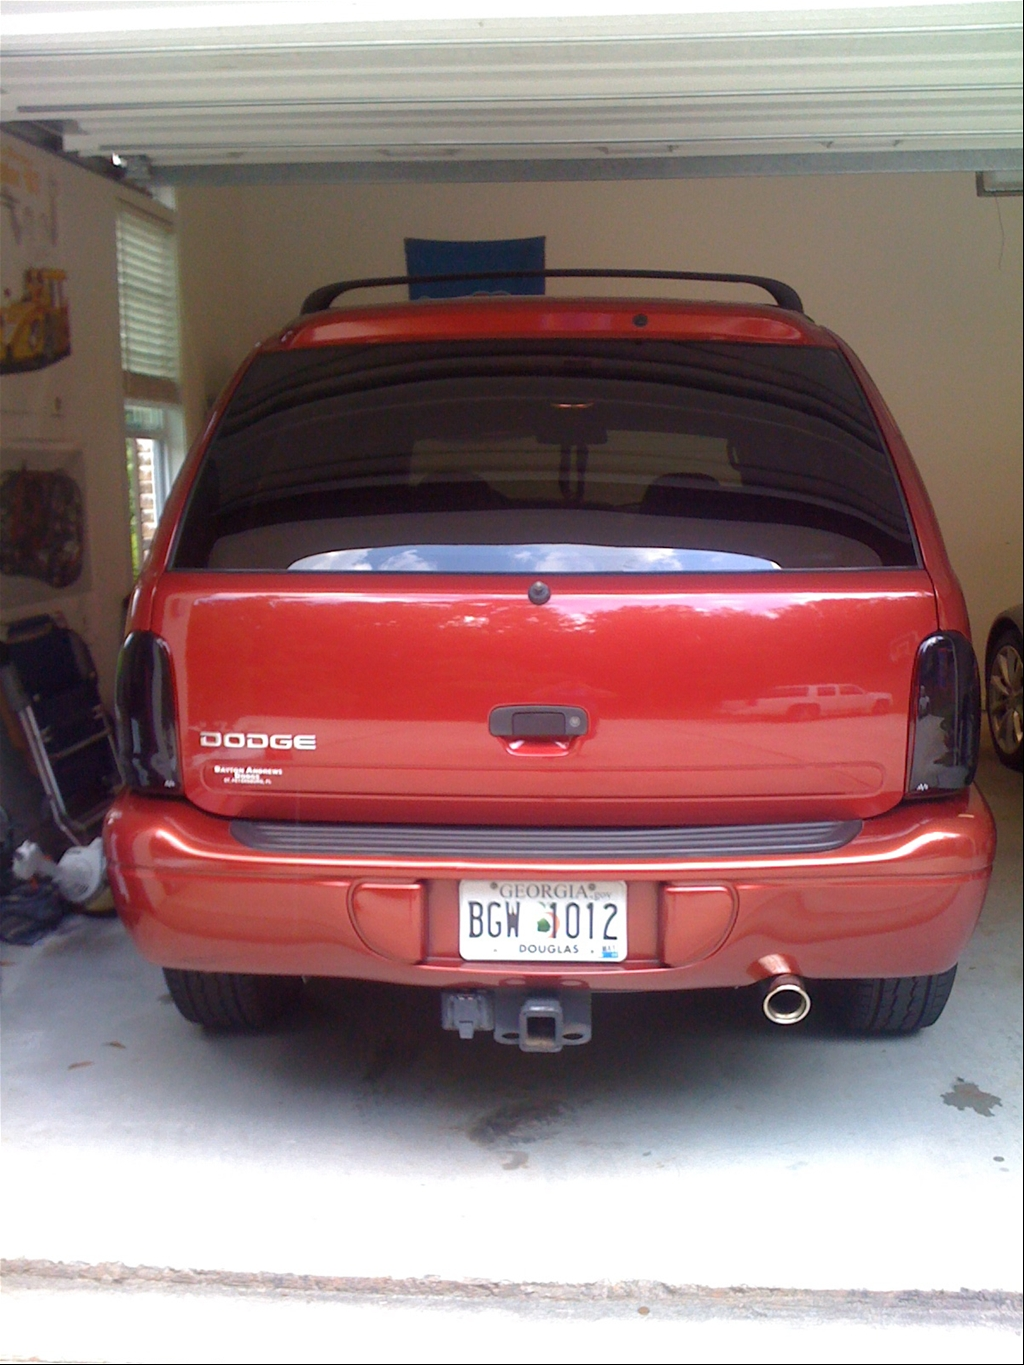 1999 Dodge Durango Body Kit http://www.cardomain.com/research/1999-dodge-durango/pictures/